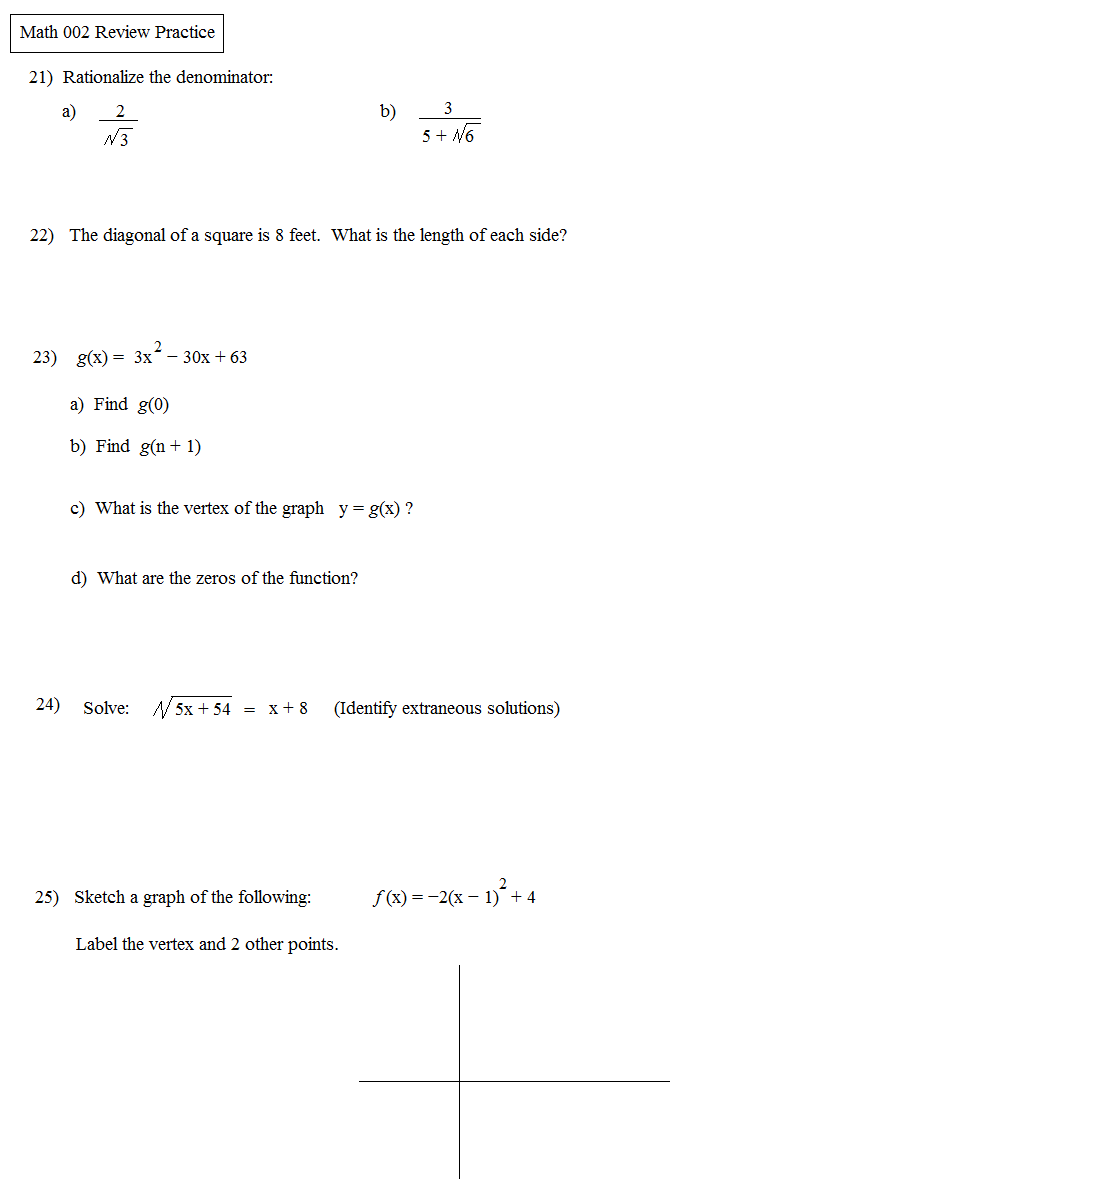 worksheet Rationalizing The Denominator Worksheet math plane algebra review 3 3